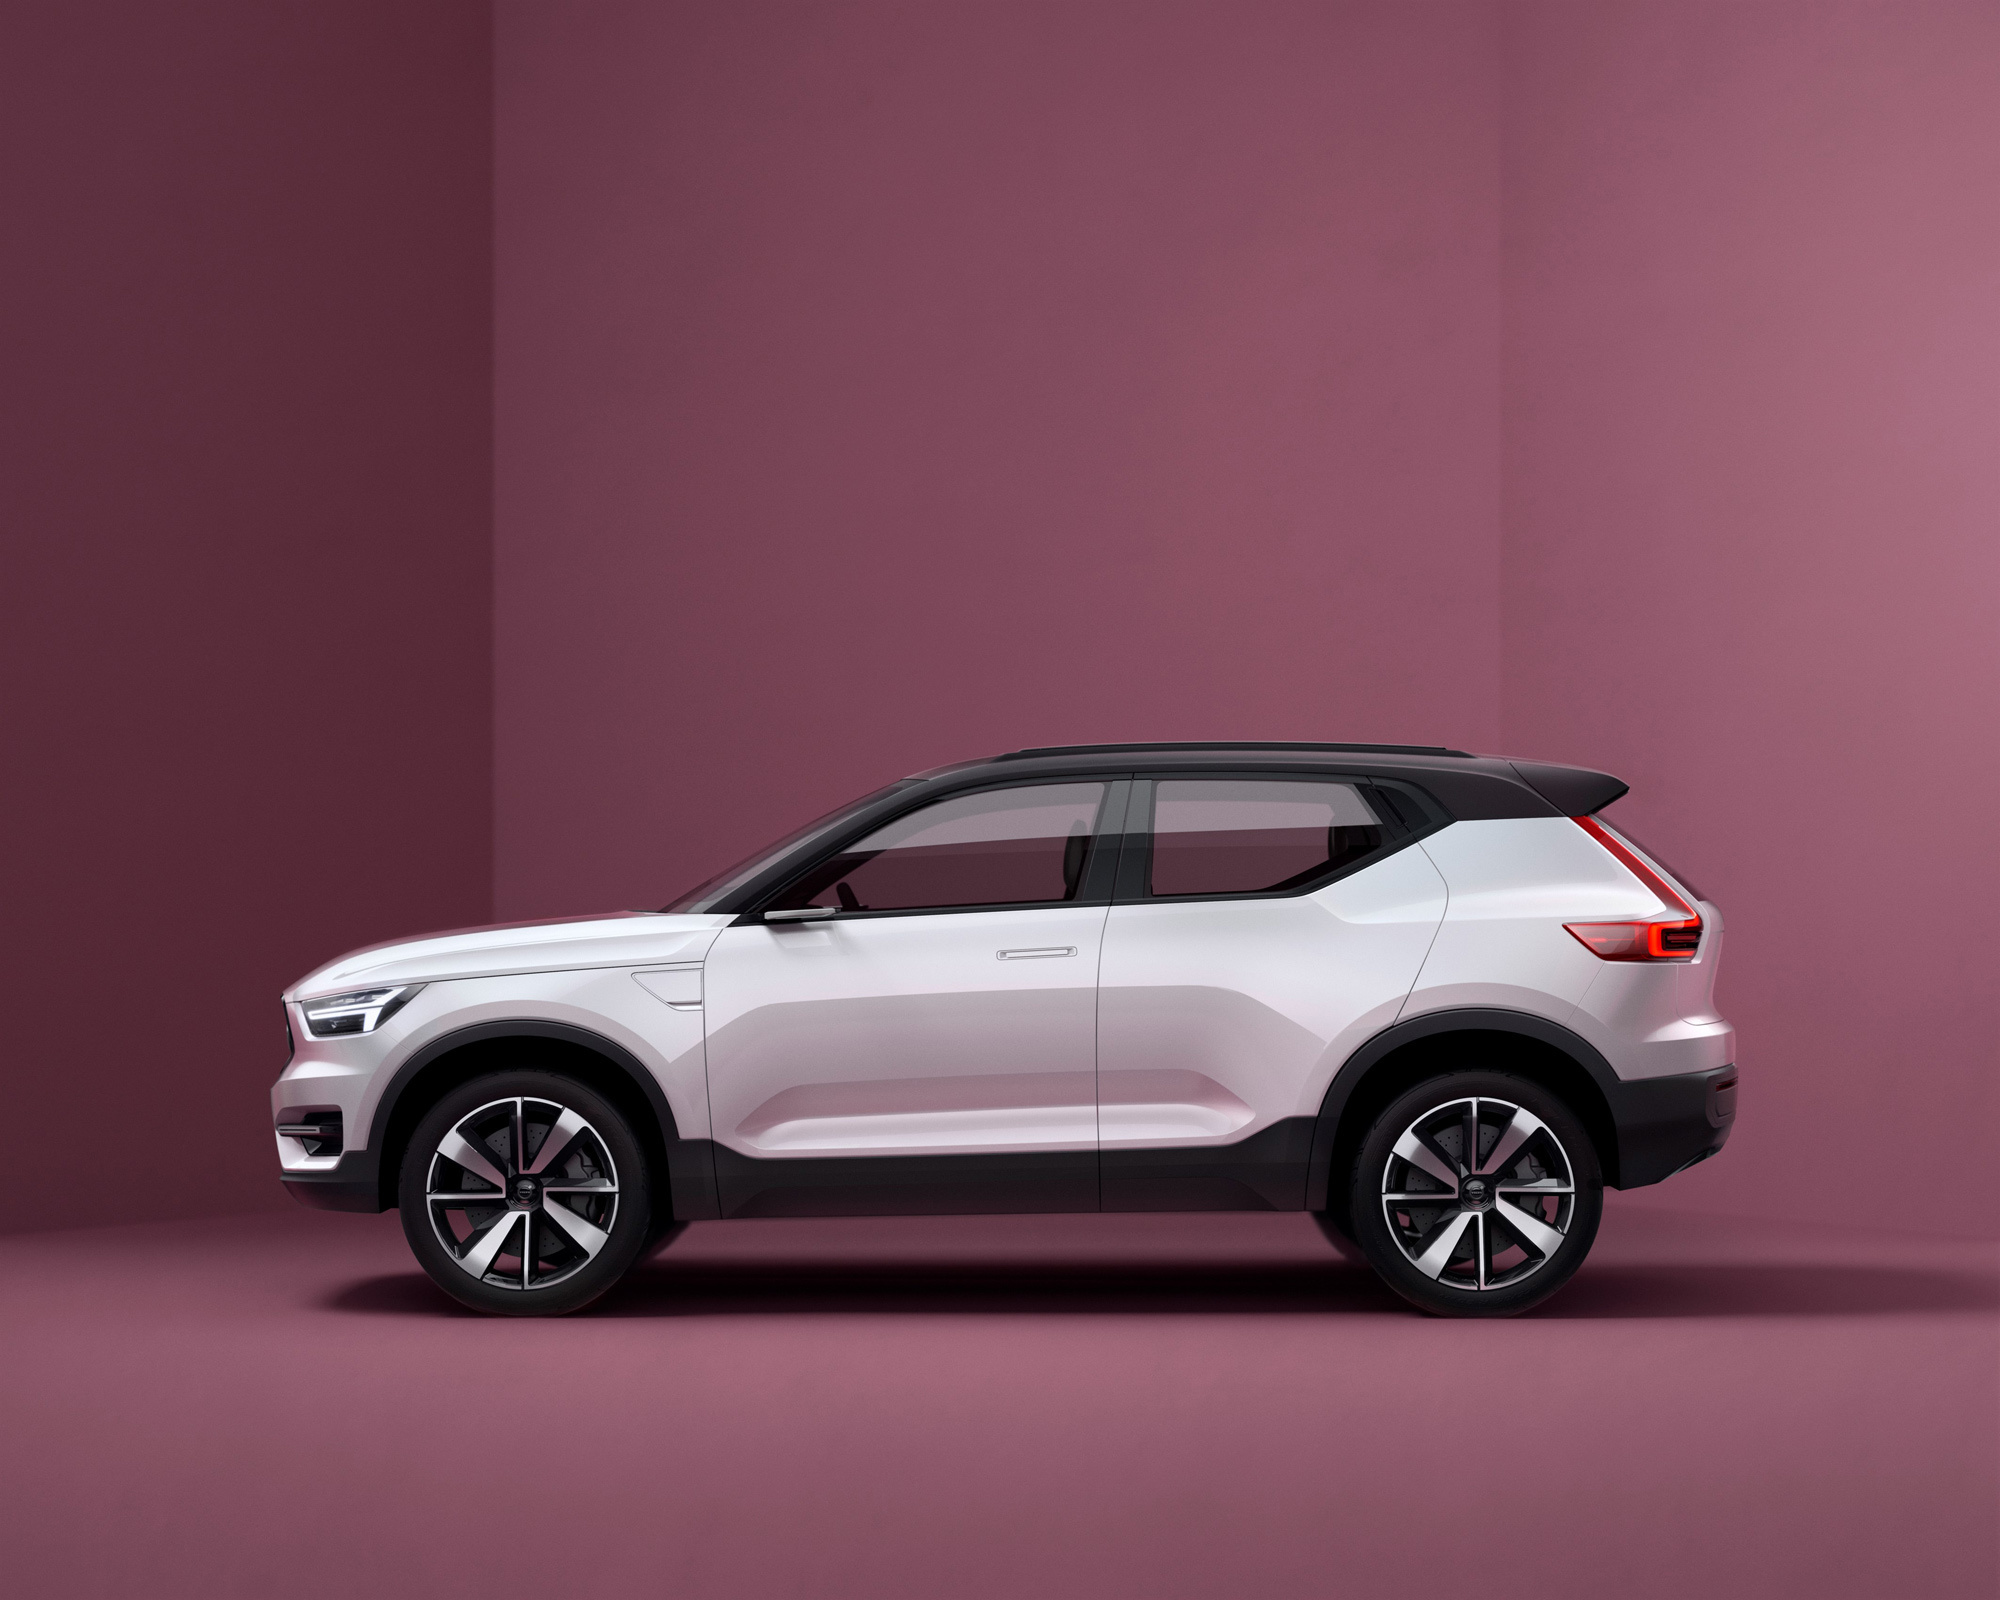 Volvo XC40 Wallpapers HD